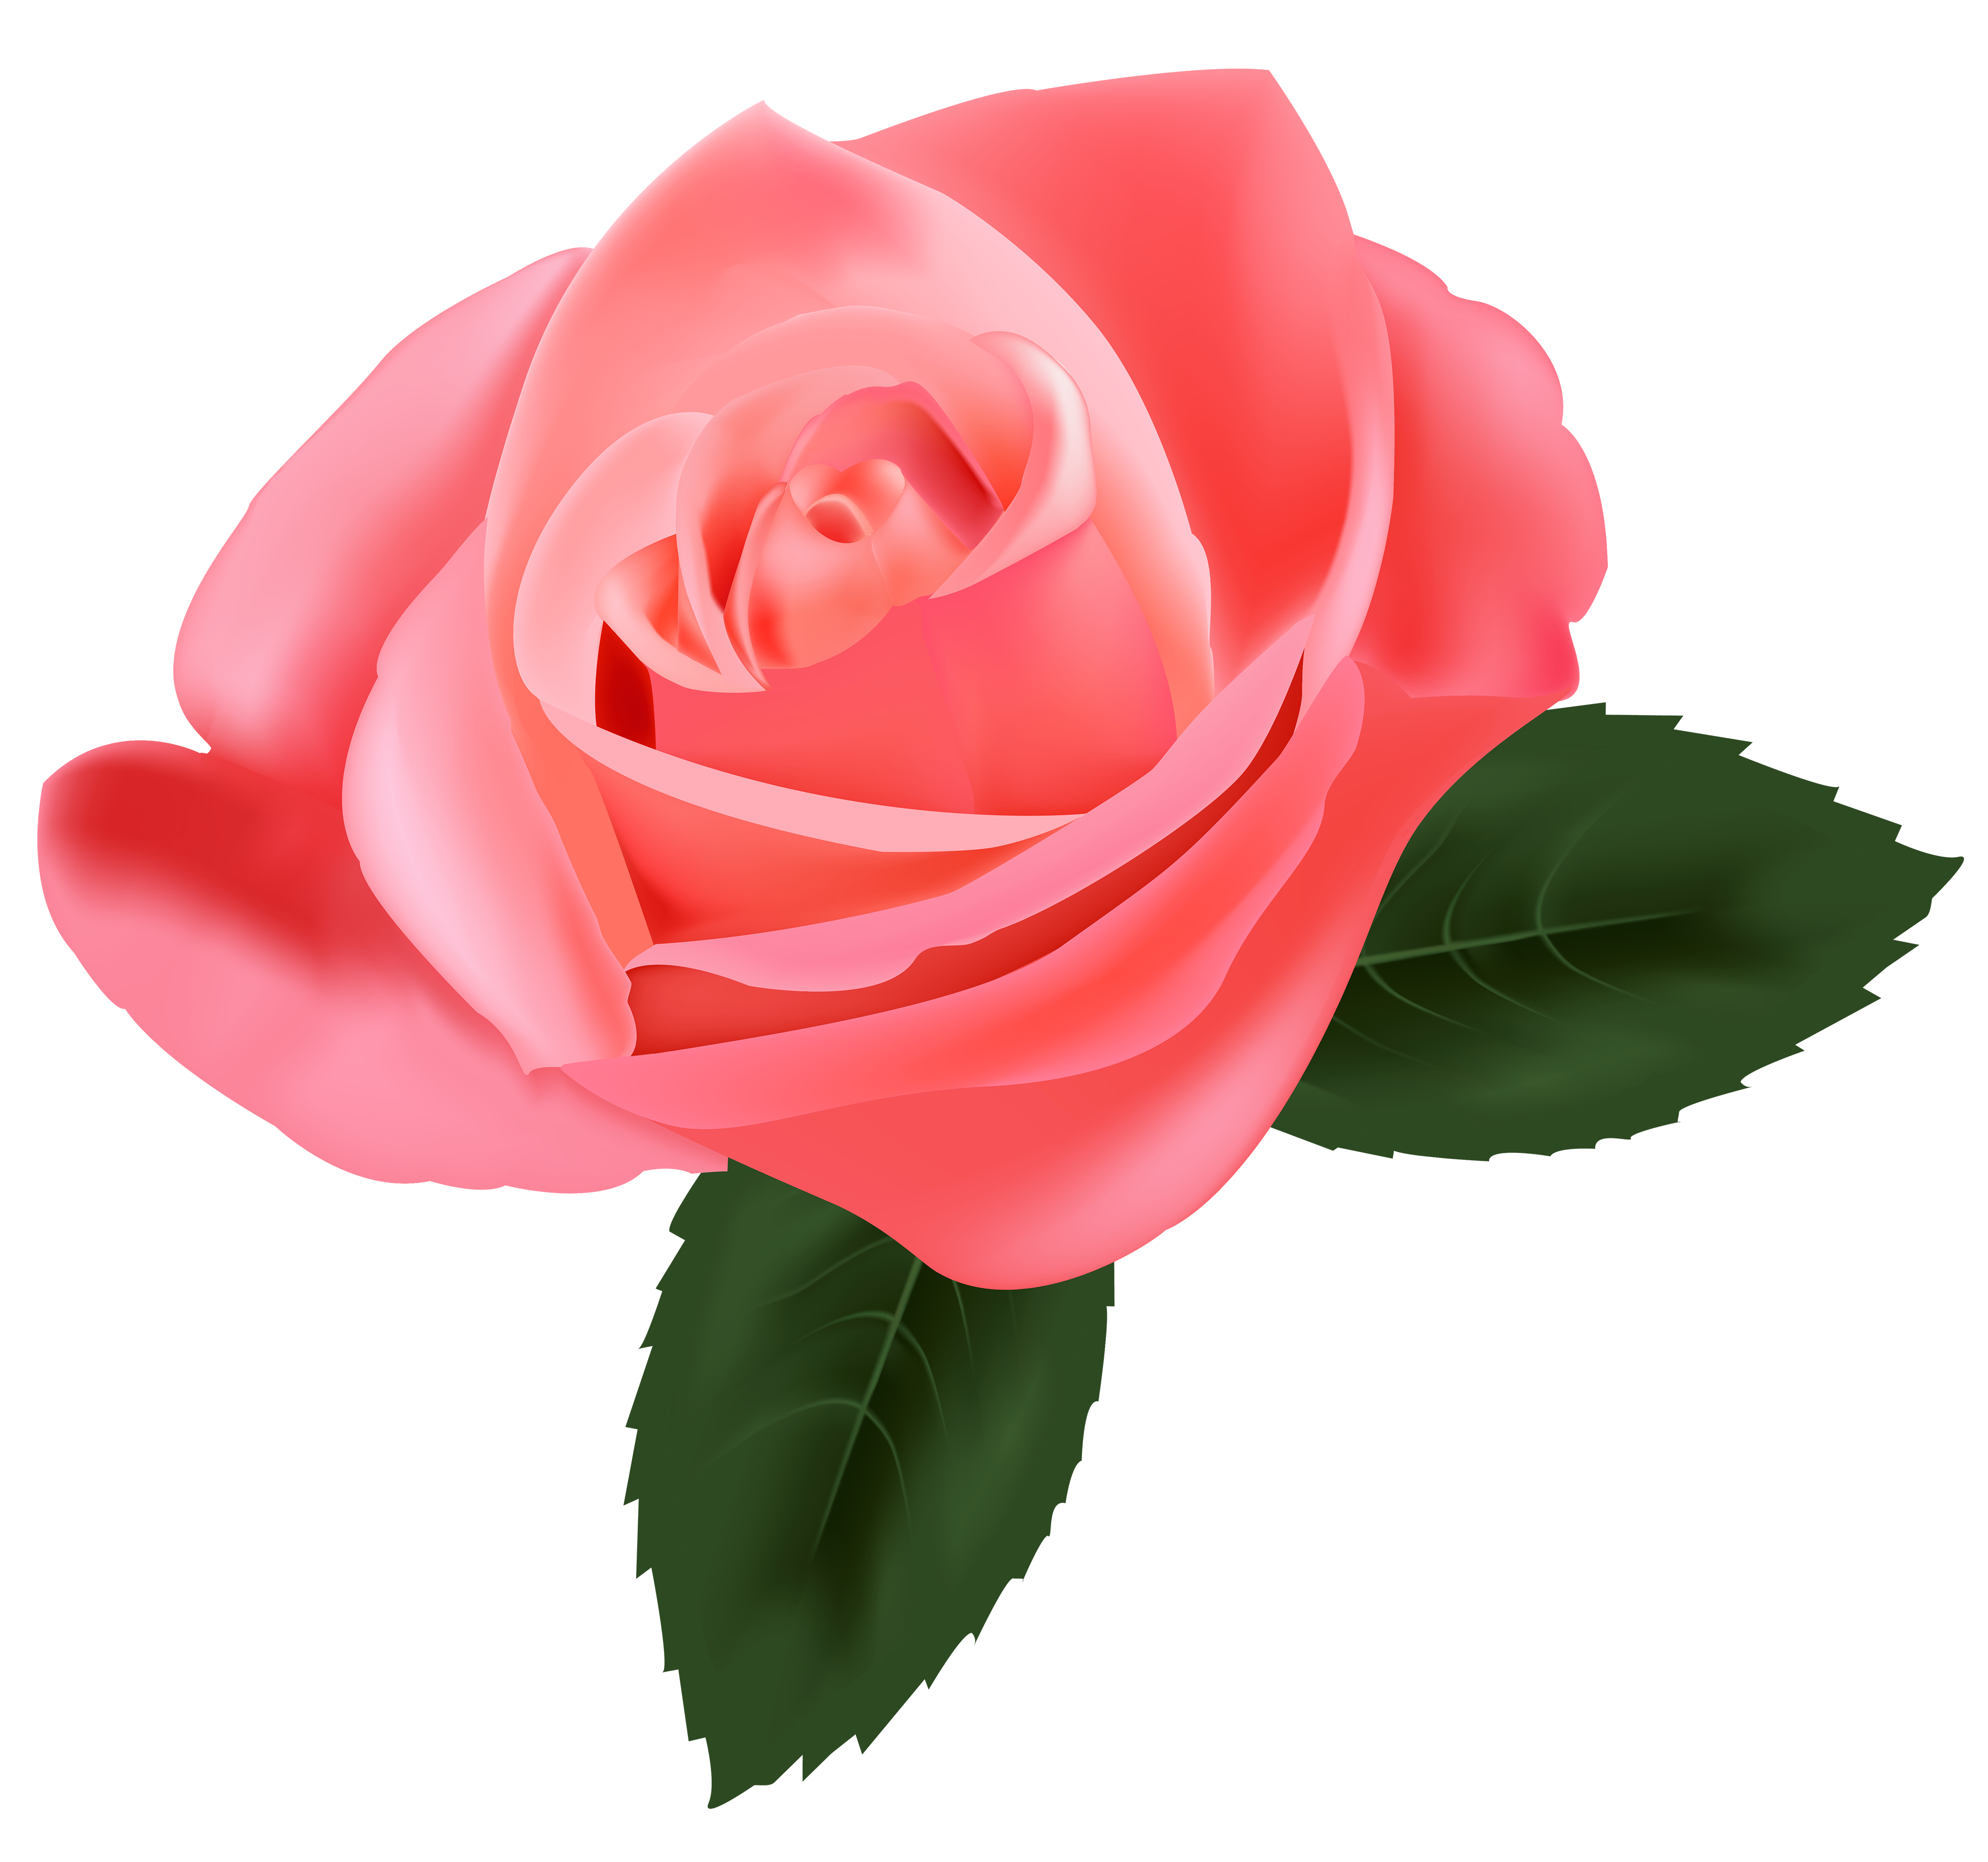 Pink Rose clipart #15